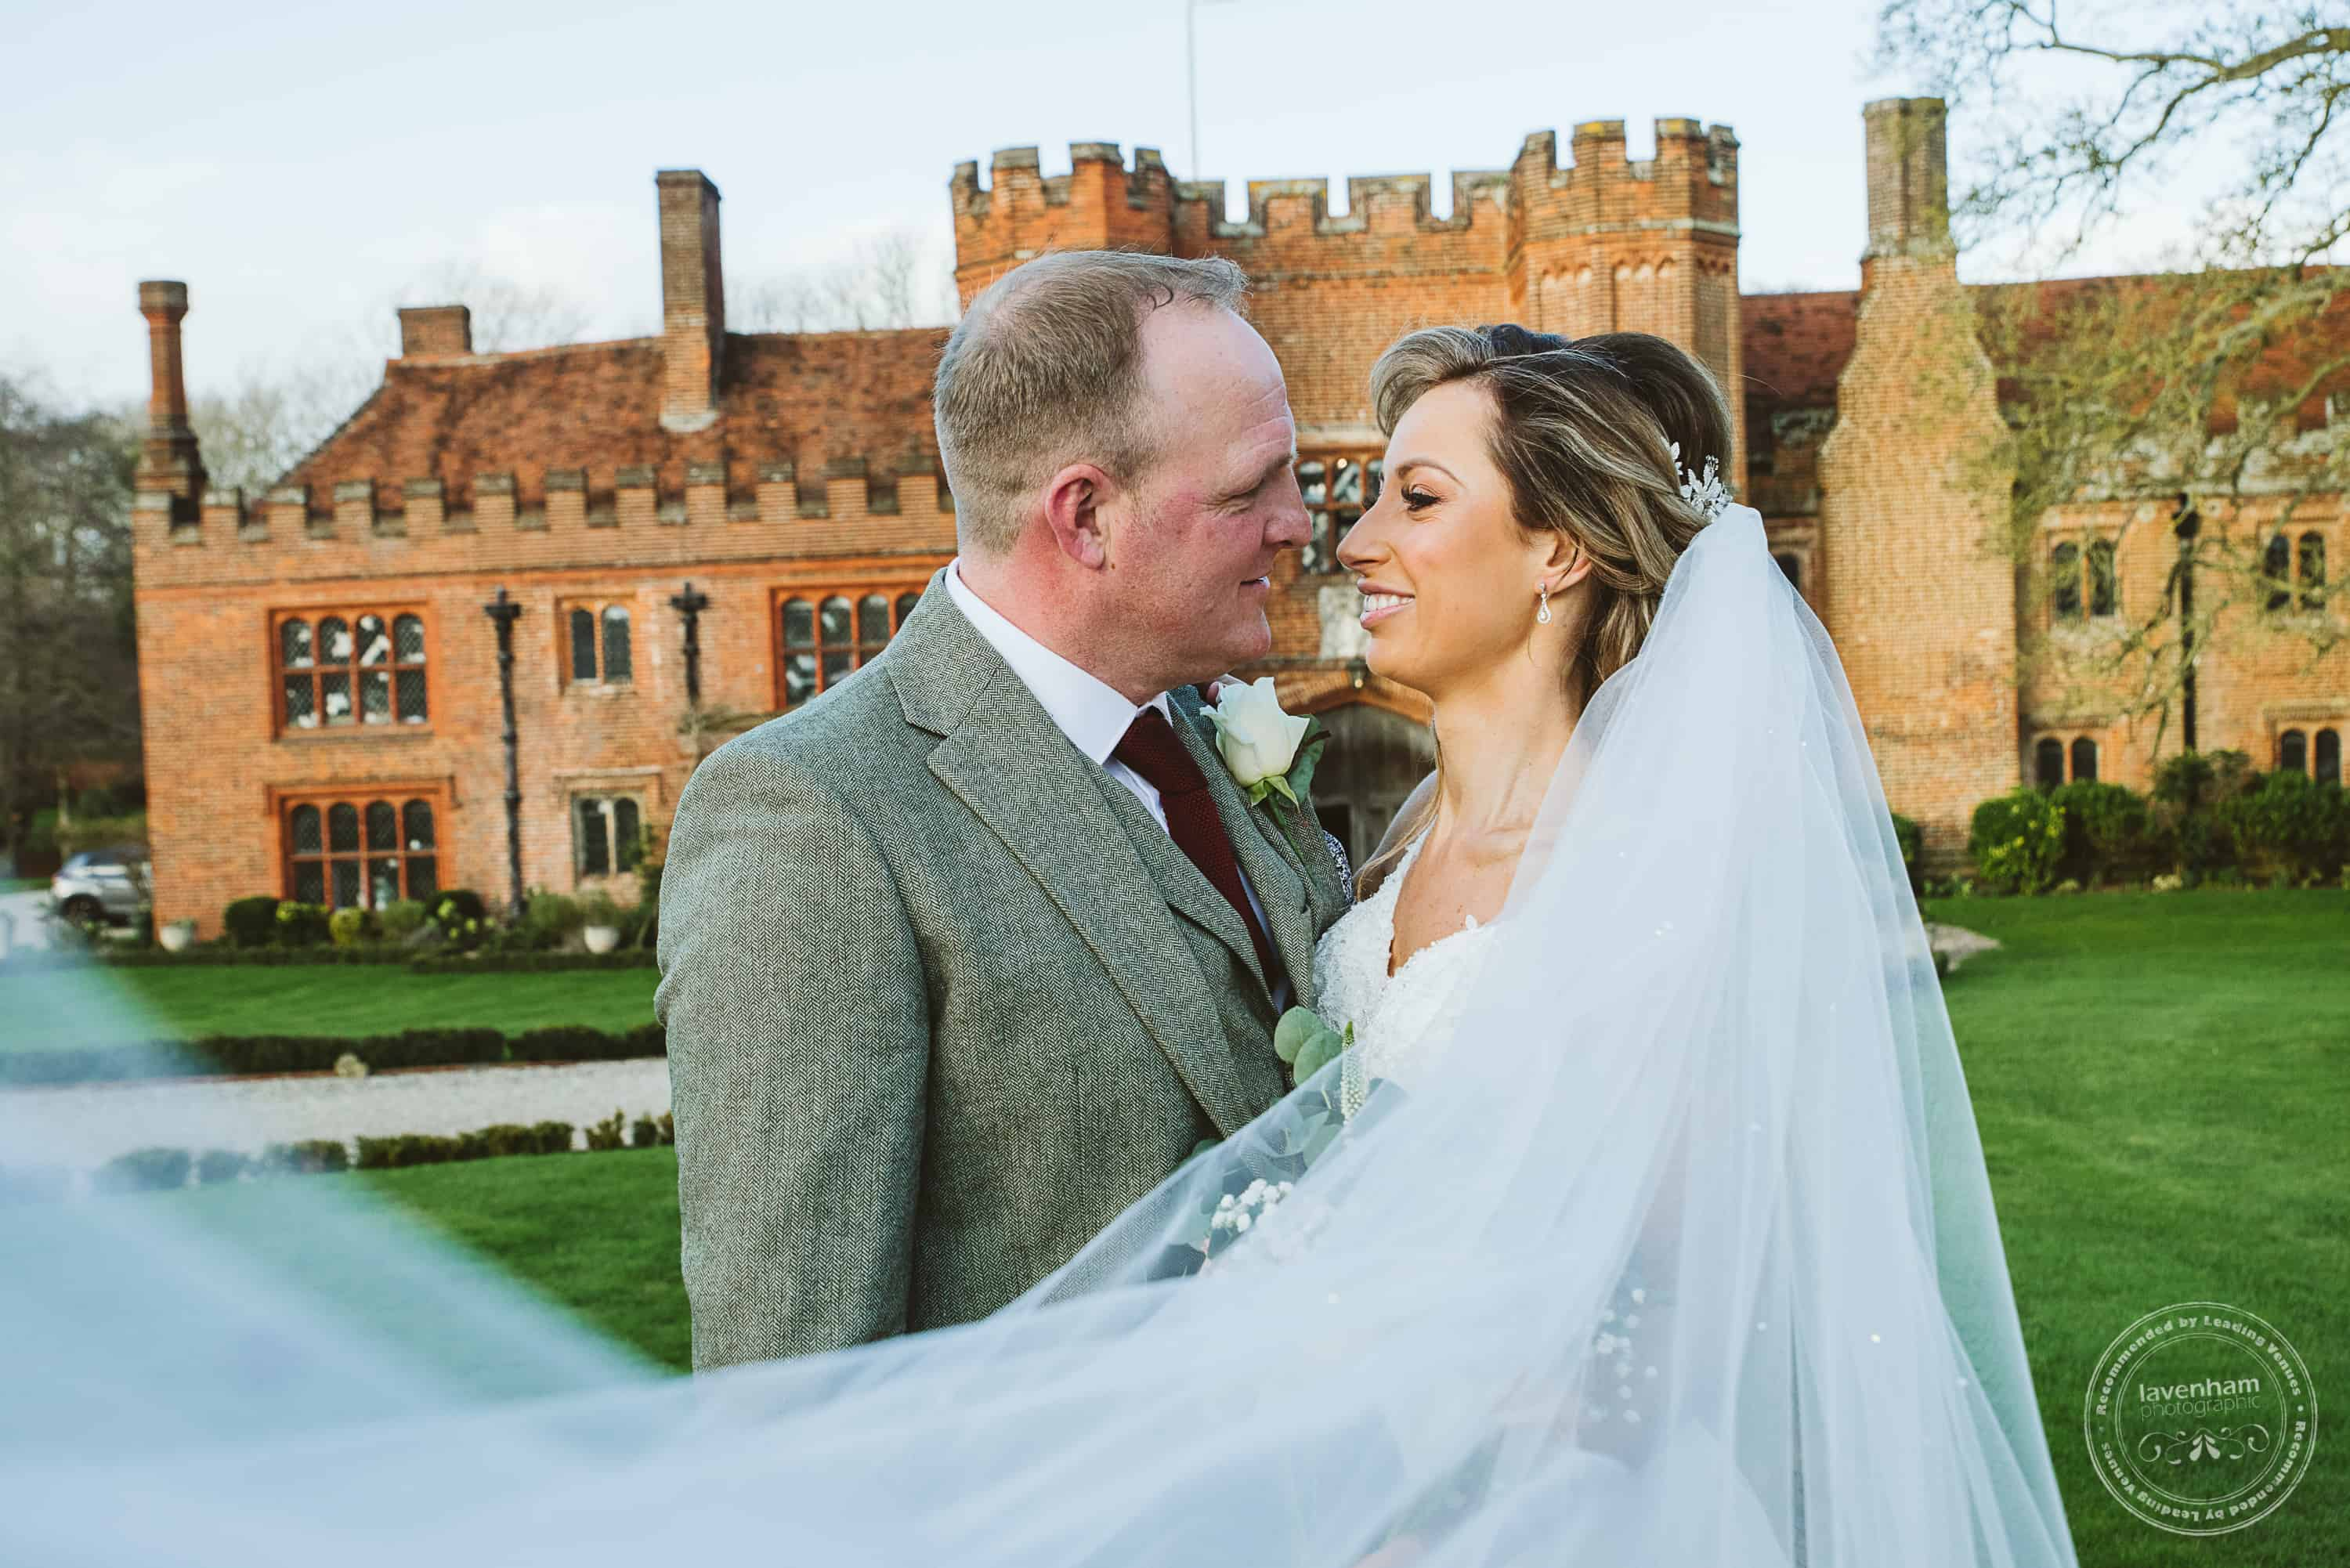 010220 Leez Priory Wedding Photographer 062